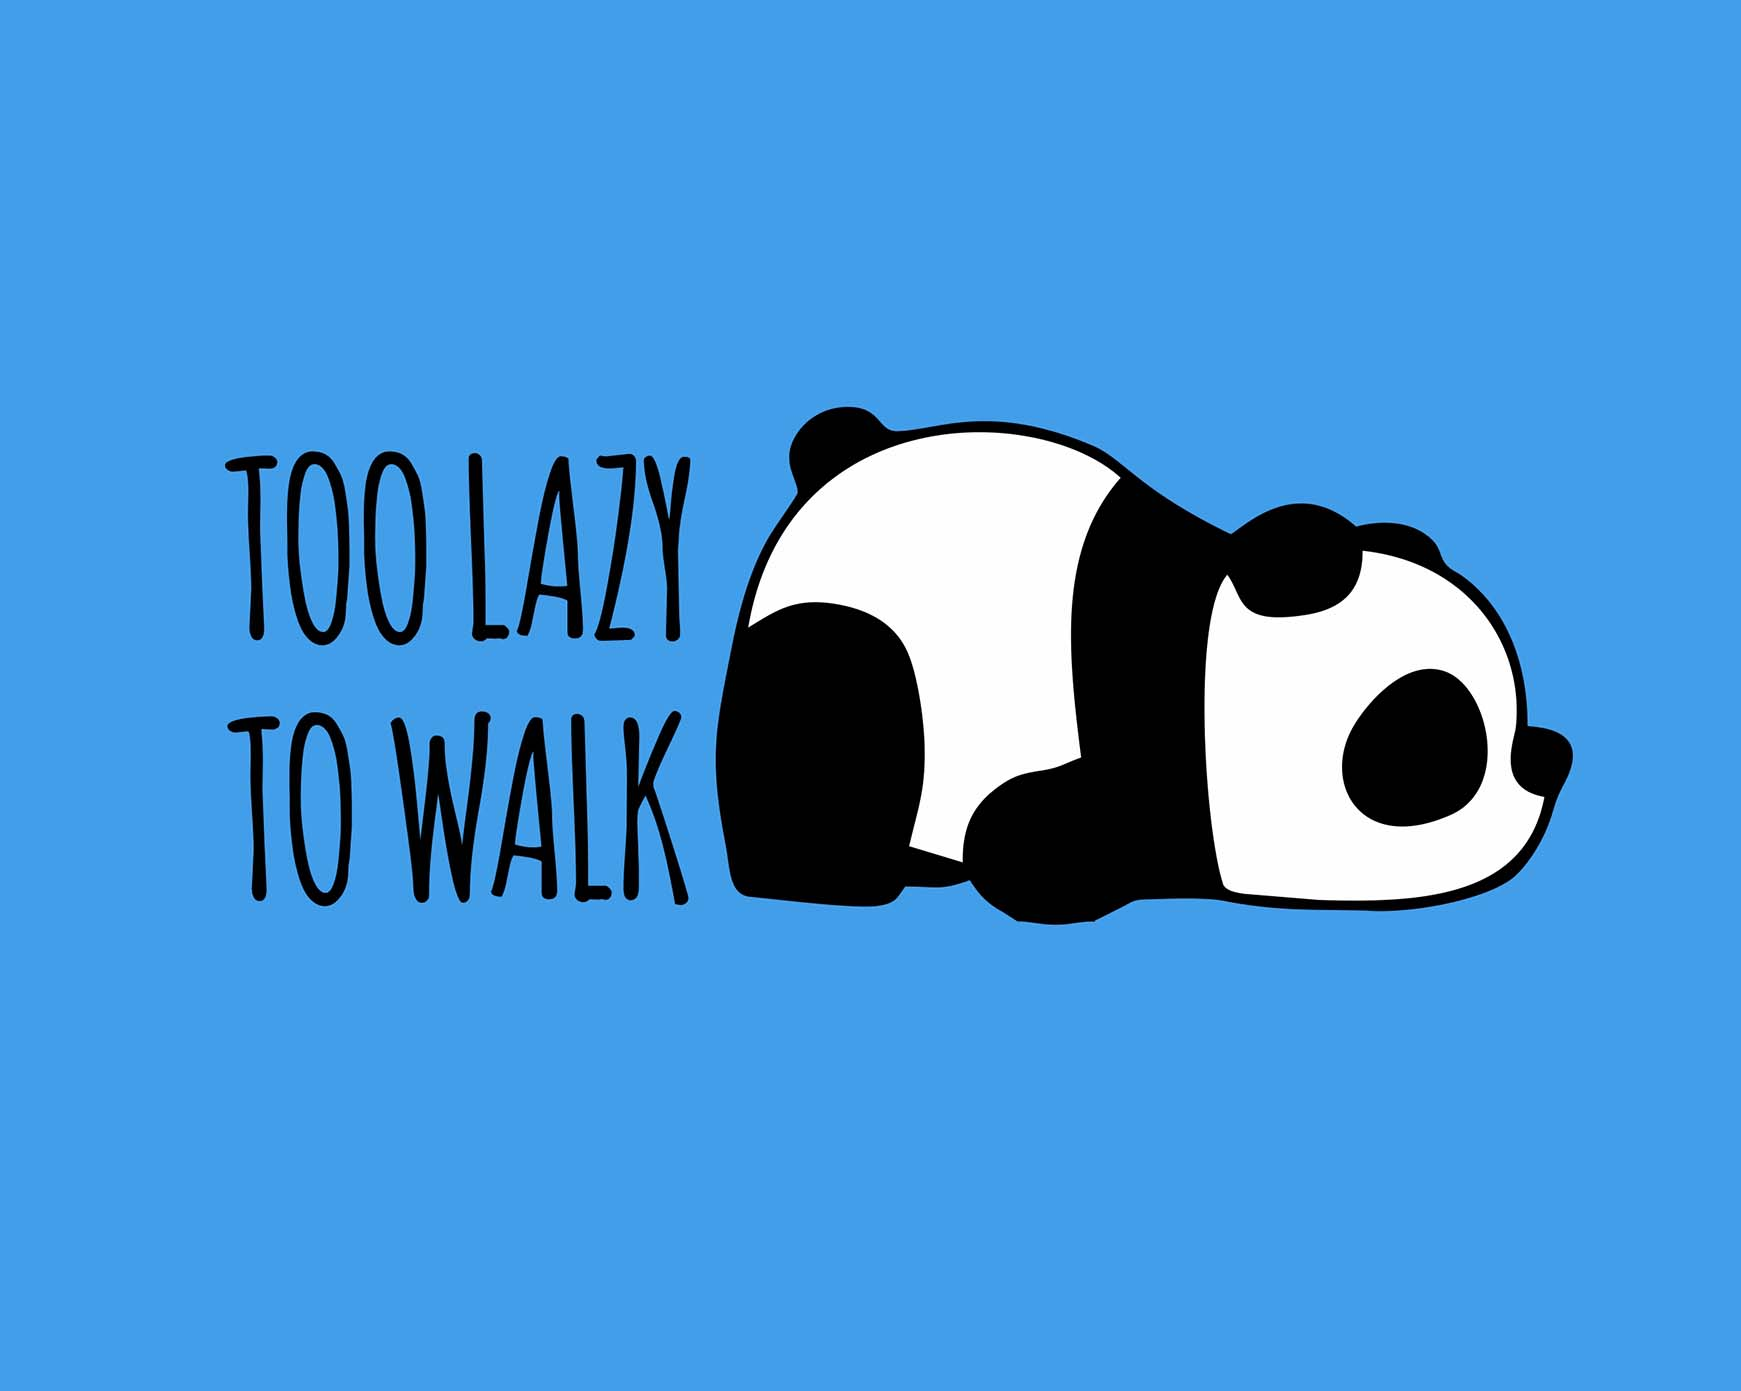 233-Too-lazy-to-walk.jpg